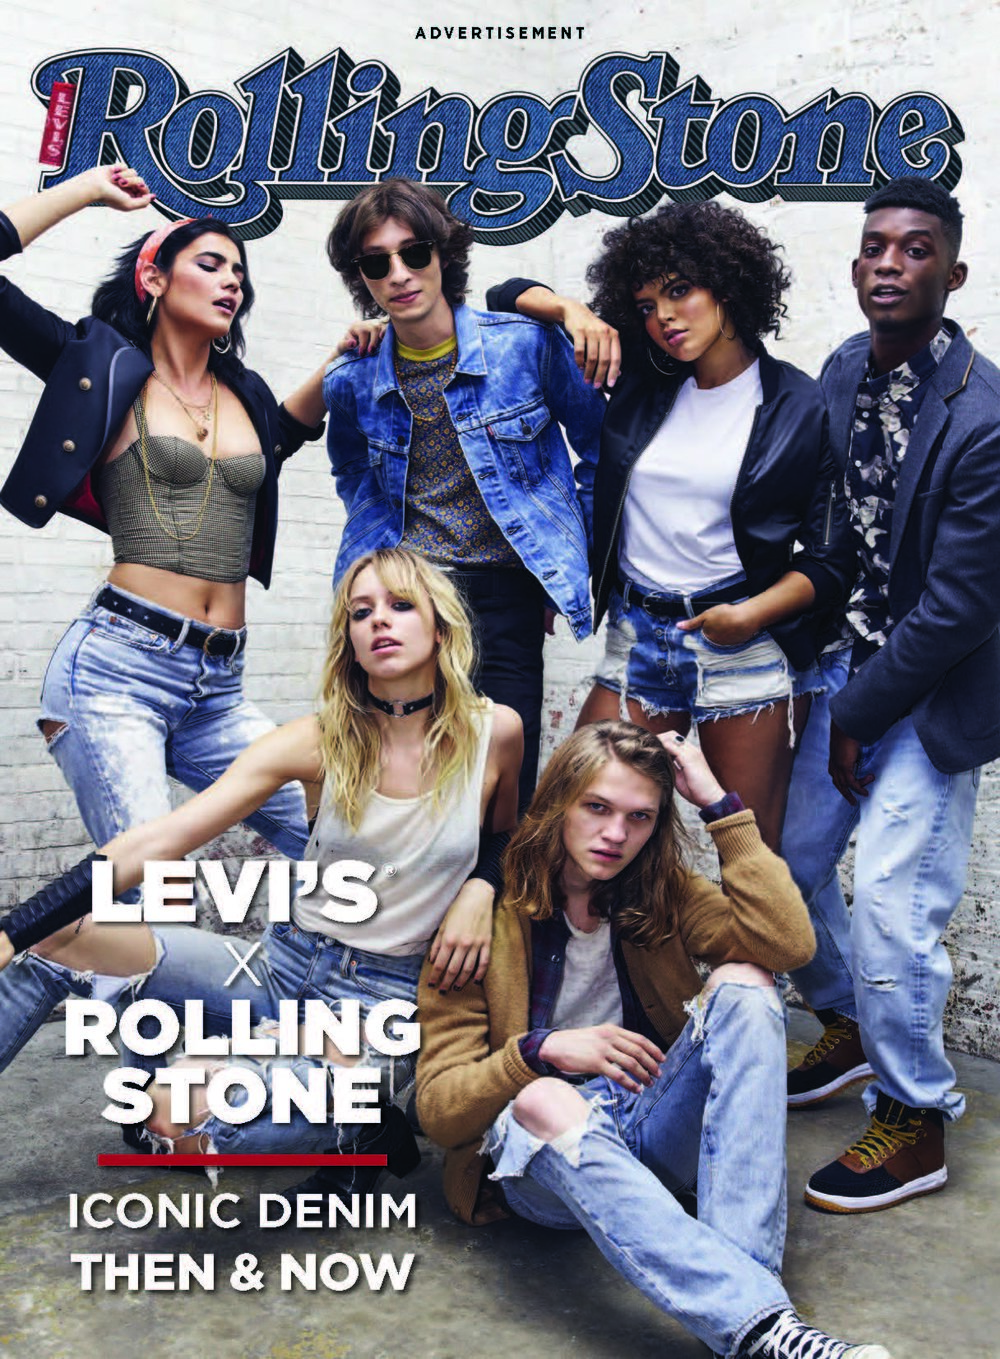 Levi's / Rolling Stone 50th Anniversary